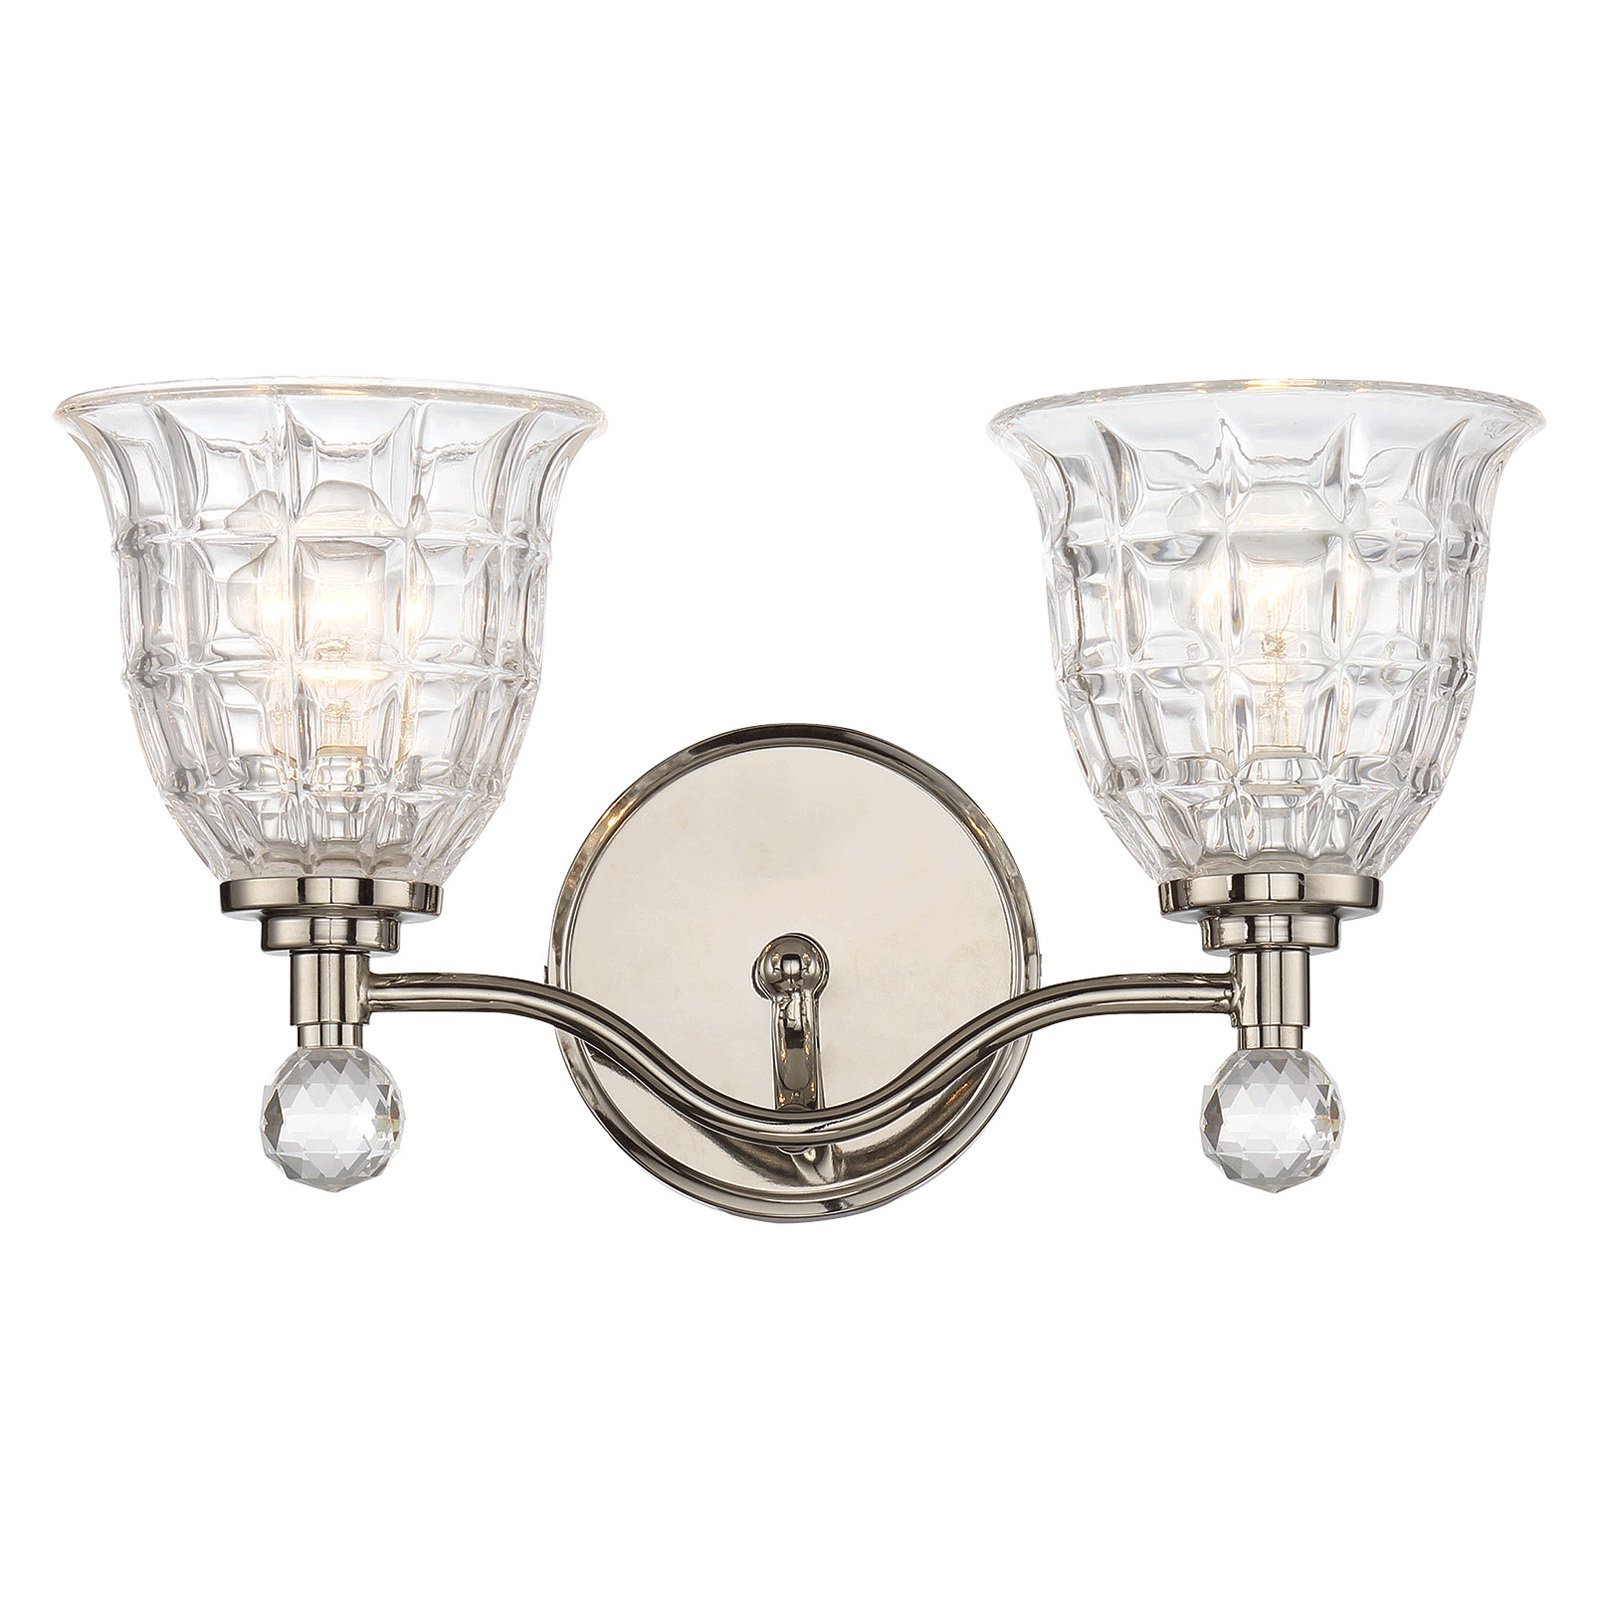 Savoy House Birone 8-880-2-109 Bathroom Vanity Light